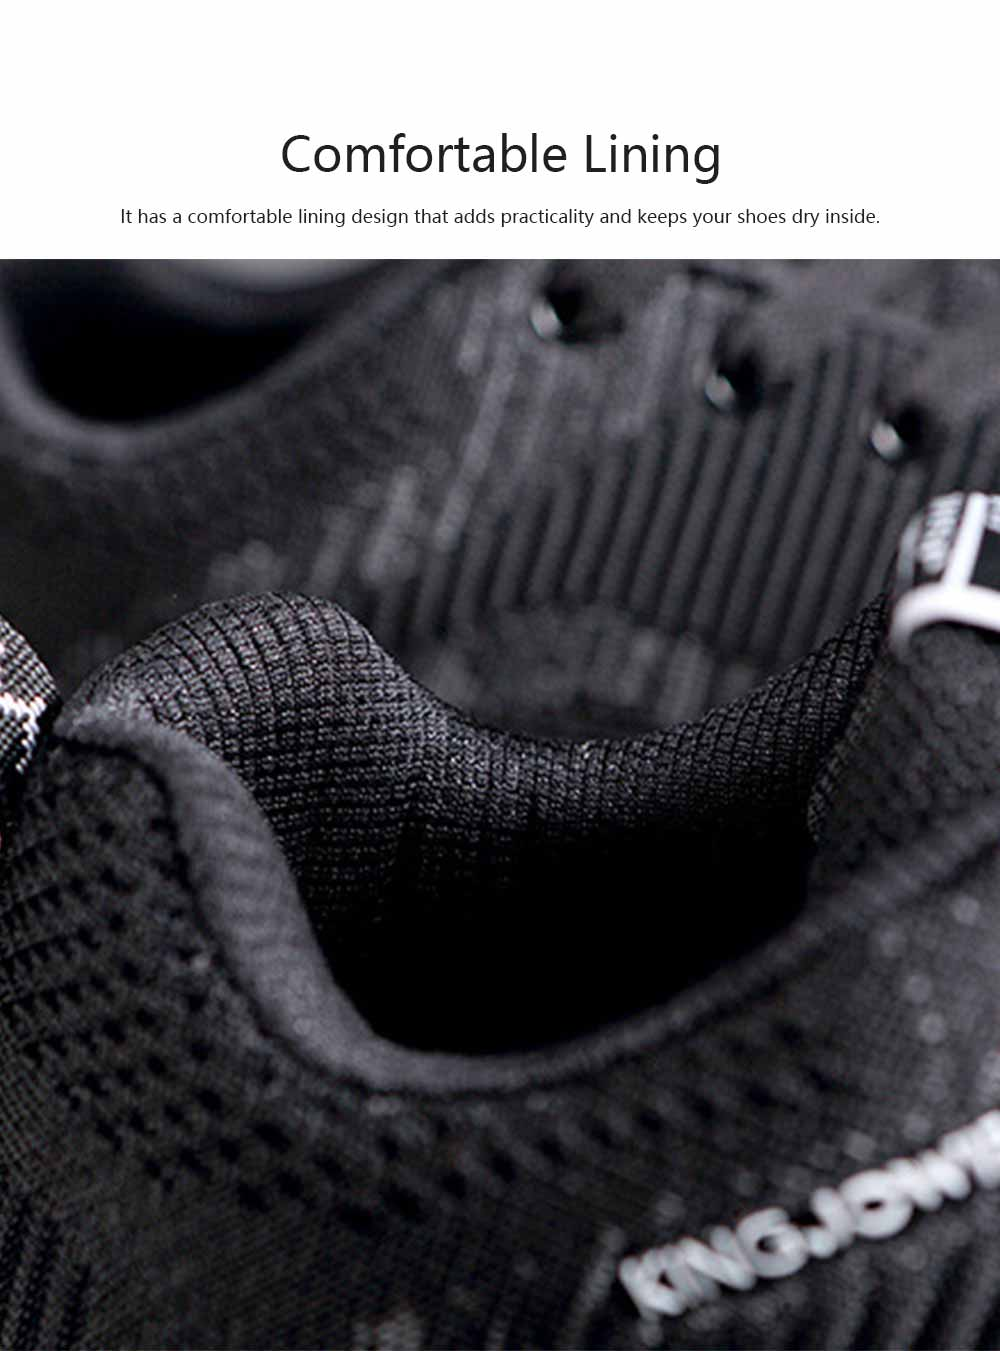 Fly-knit Sneakers for Men Concave Convex Texture Comfortable Lining Shock Absorption Rubber Sole Sports Shoes Spring and Summer 2